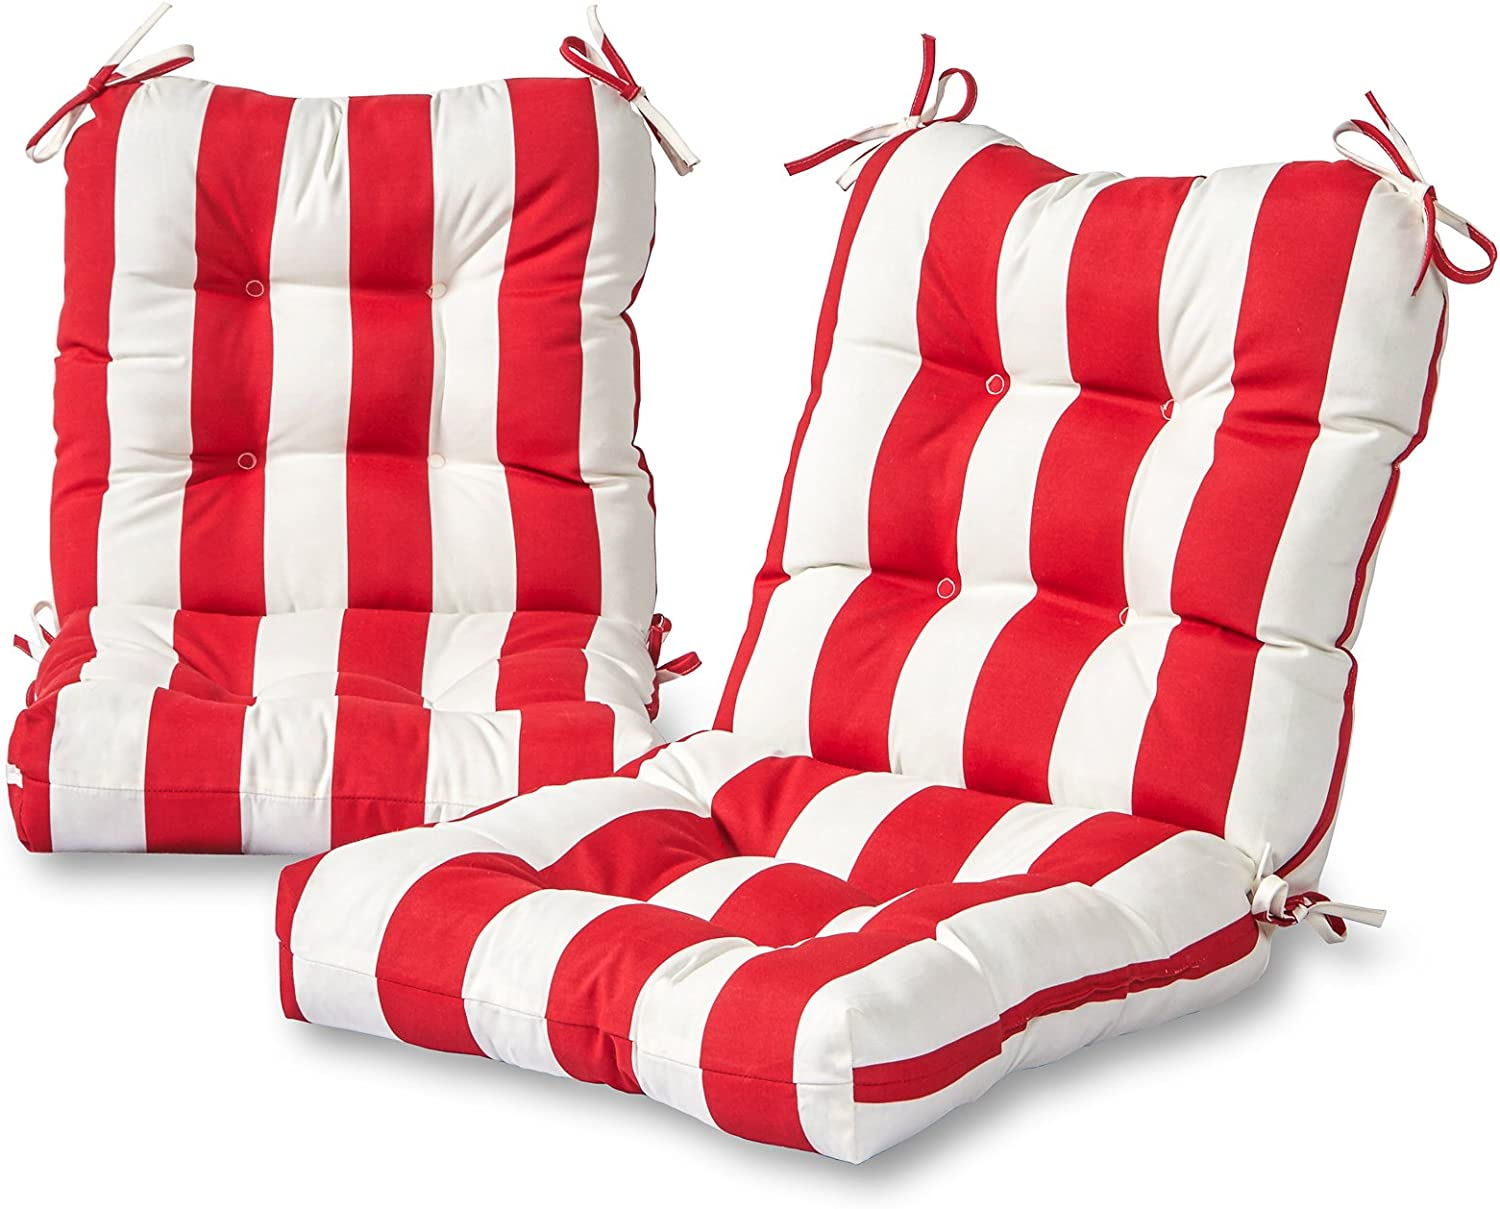 Greendale Home Fashions AZ6815S2-CABANA-RED Bungalow Stripe Red Outdoor Chair Cushion (Set of 2)